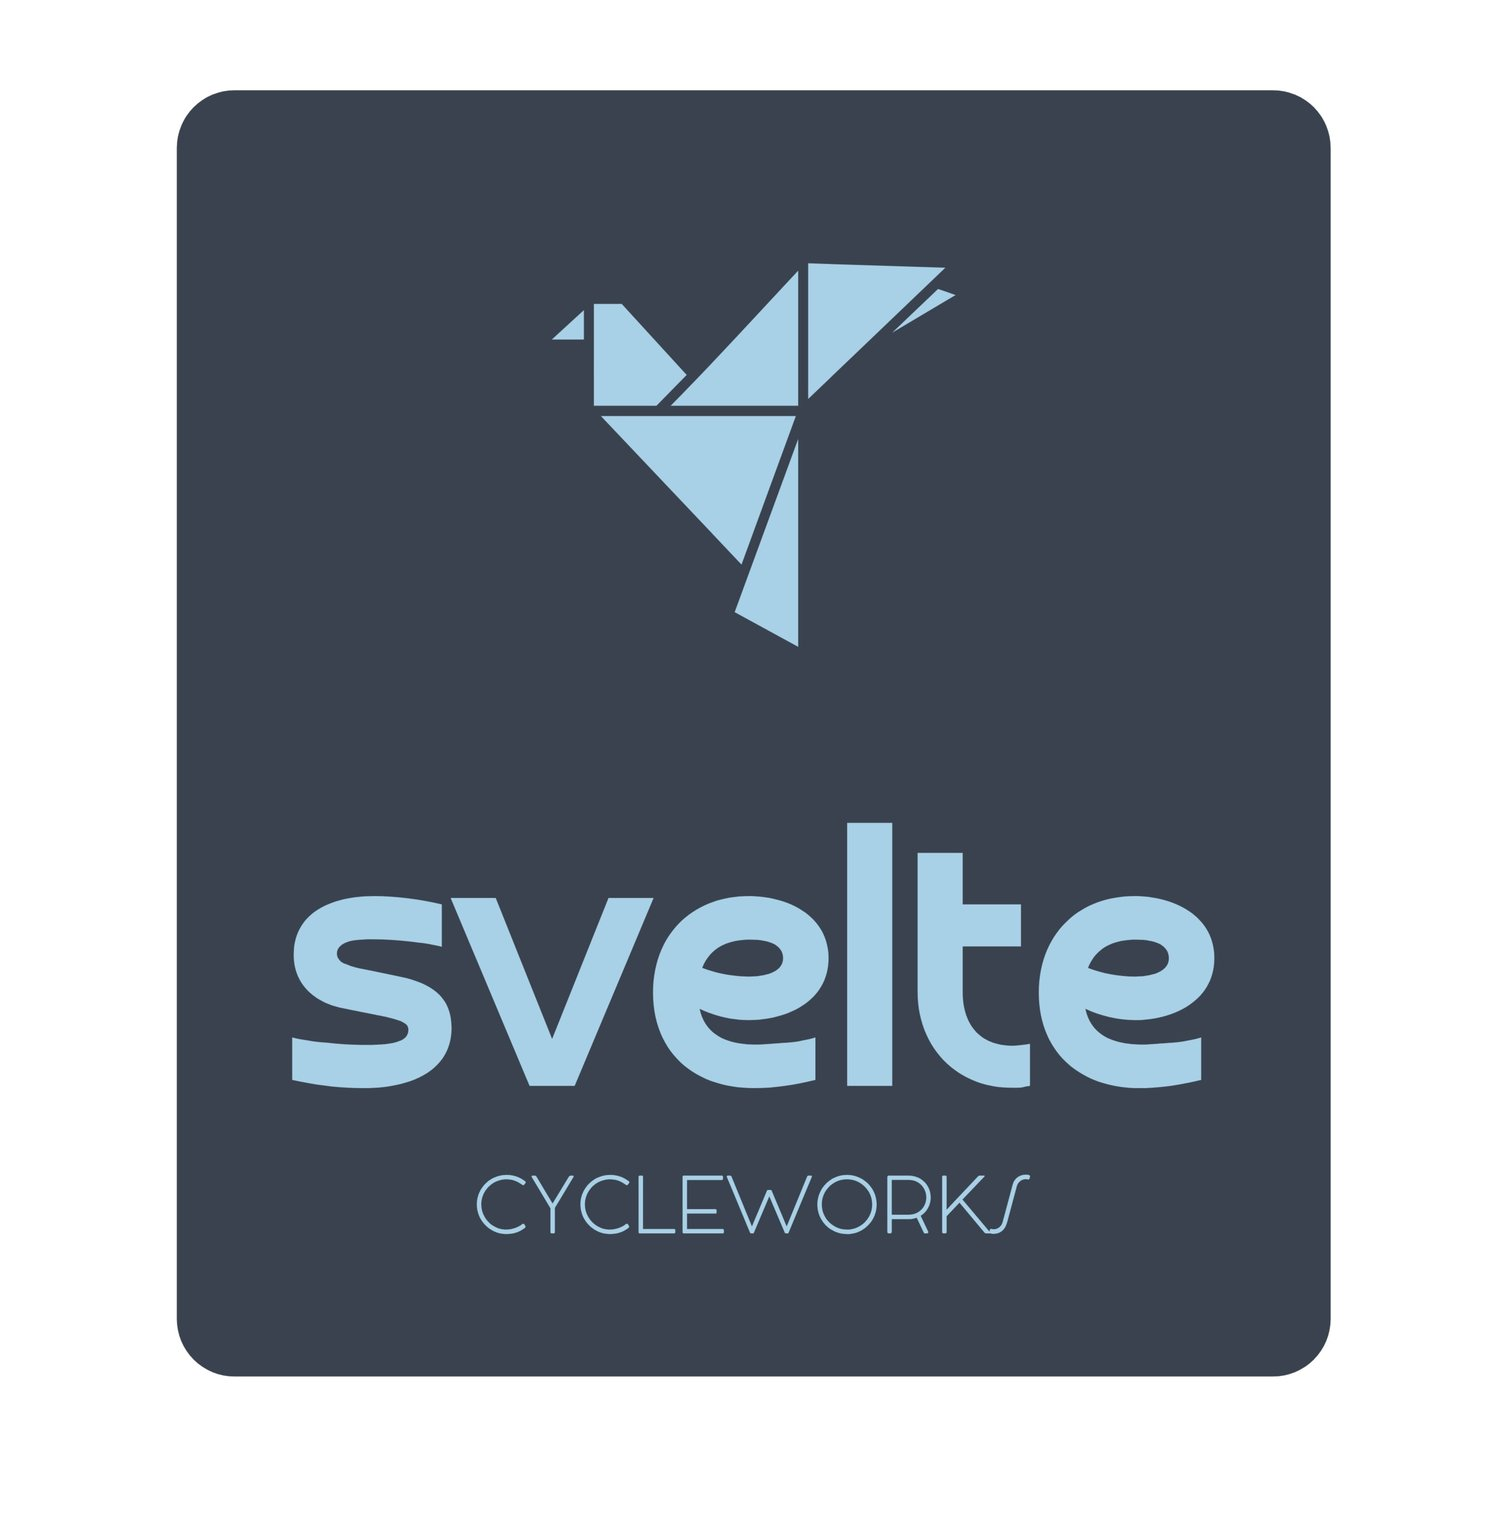 Svelte Cycleworks